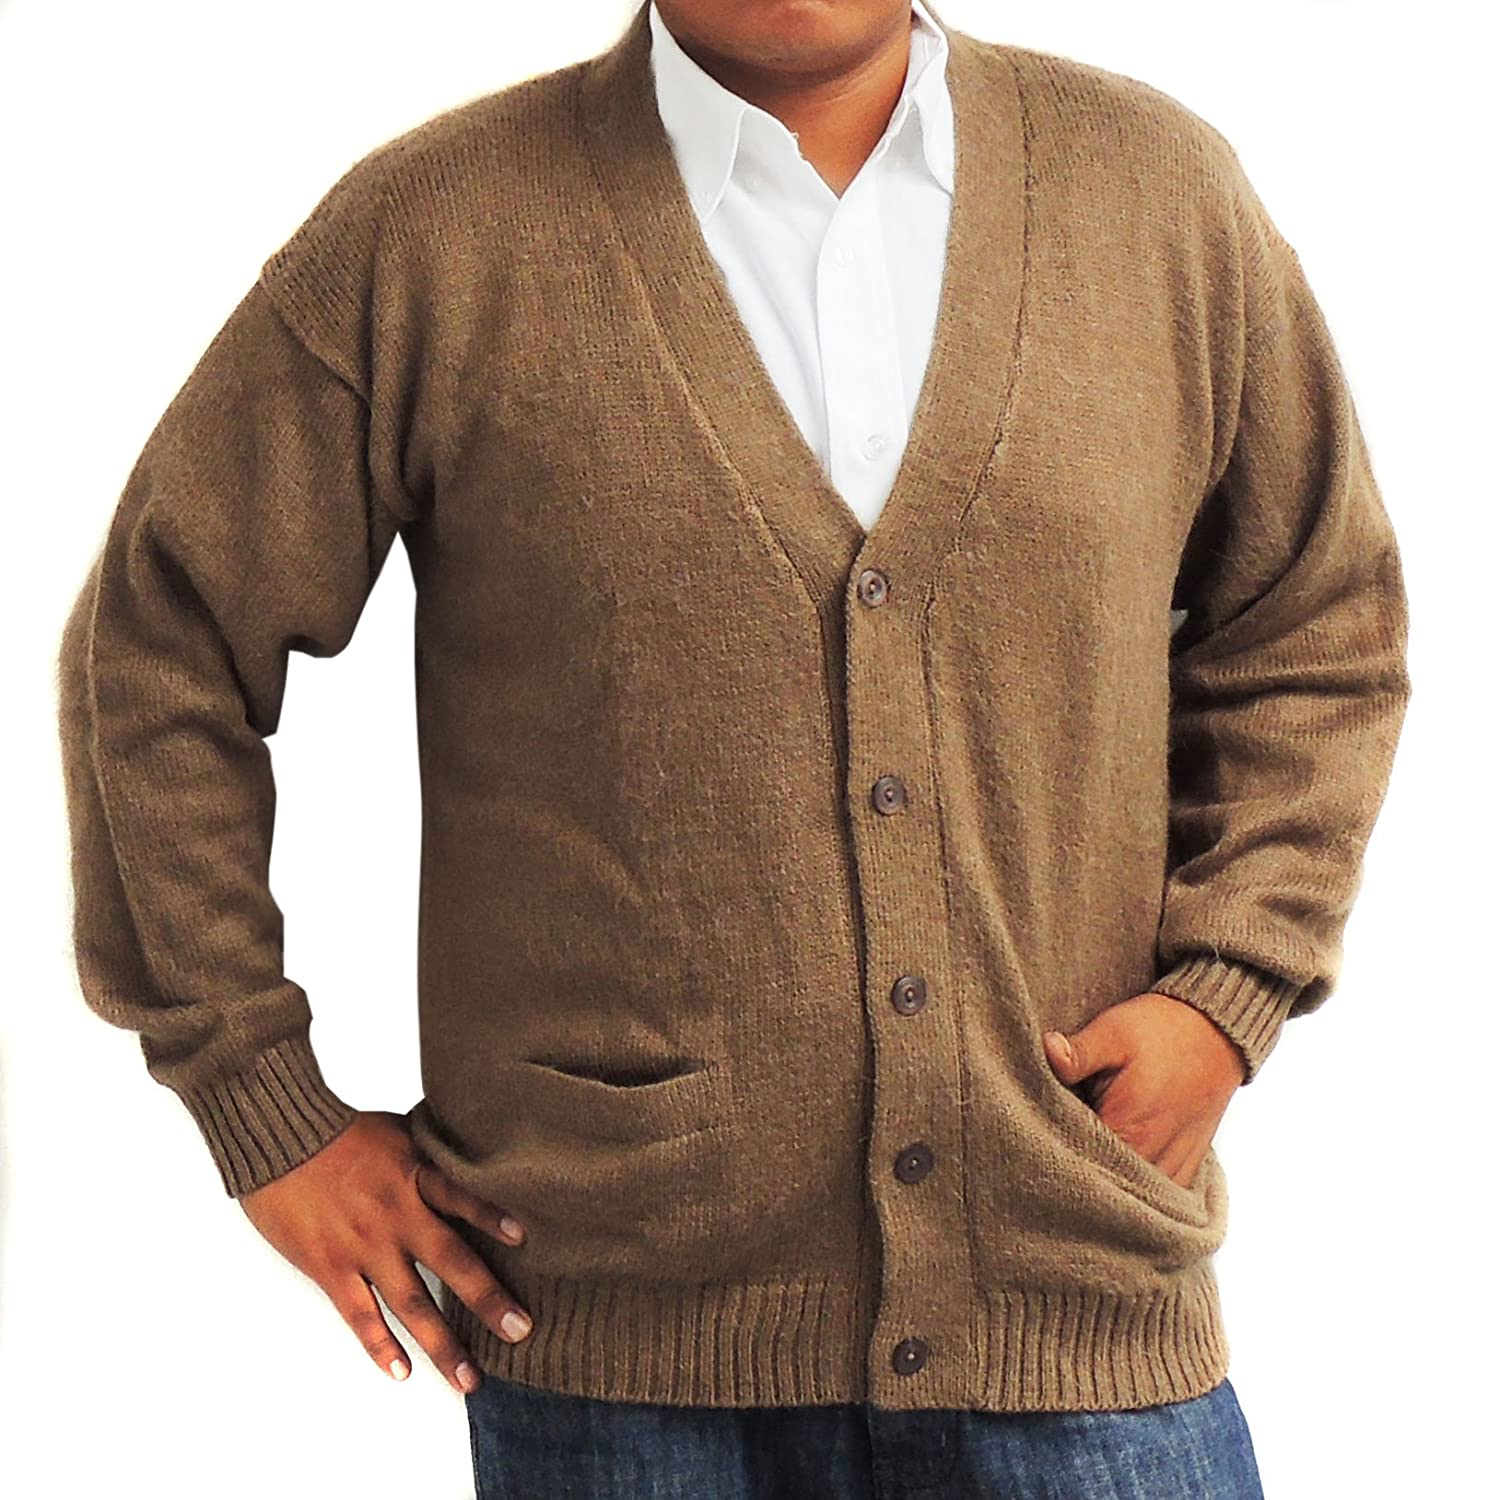 CELITAS DESIGN Cardigan Alpaca and Blend V neck Buttons and pockets olive green